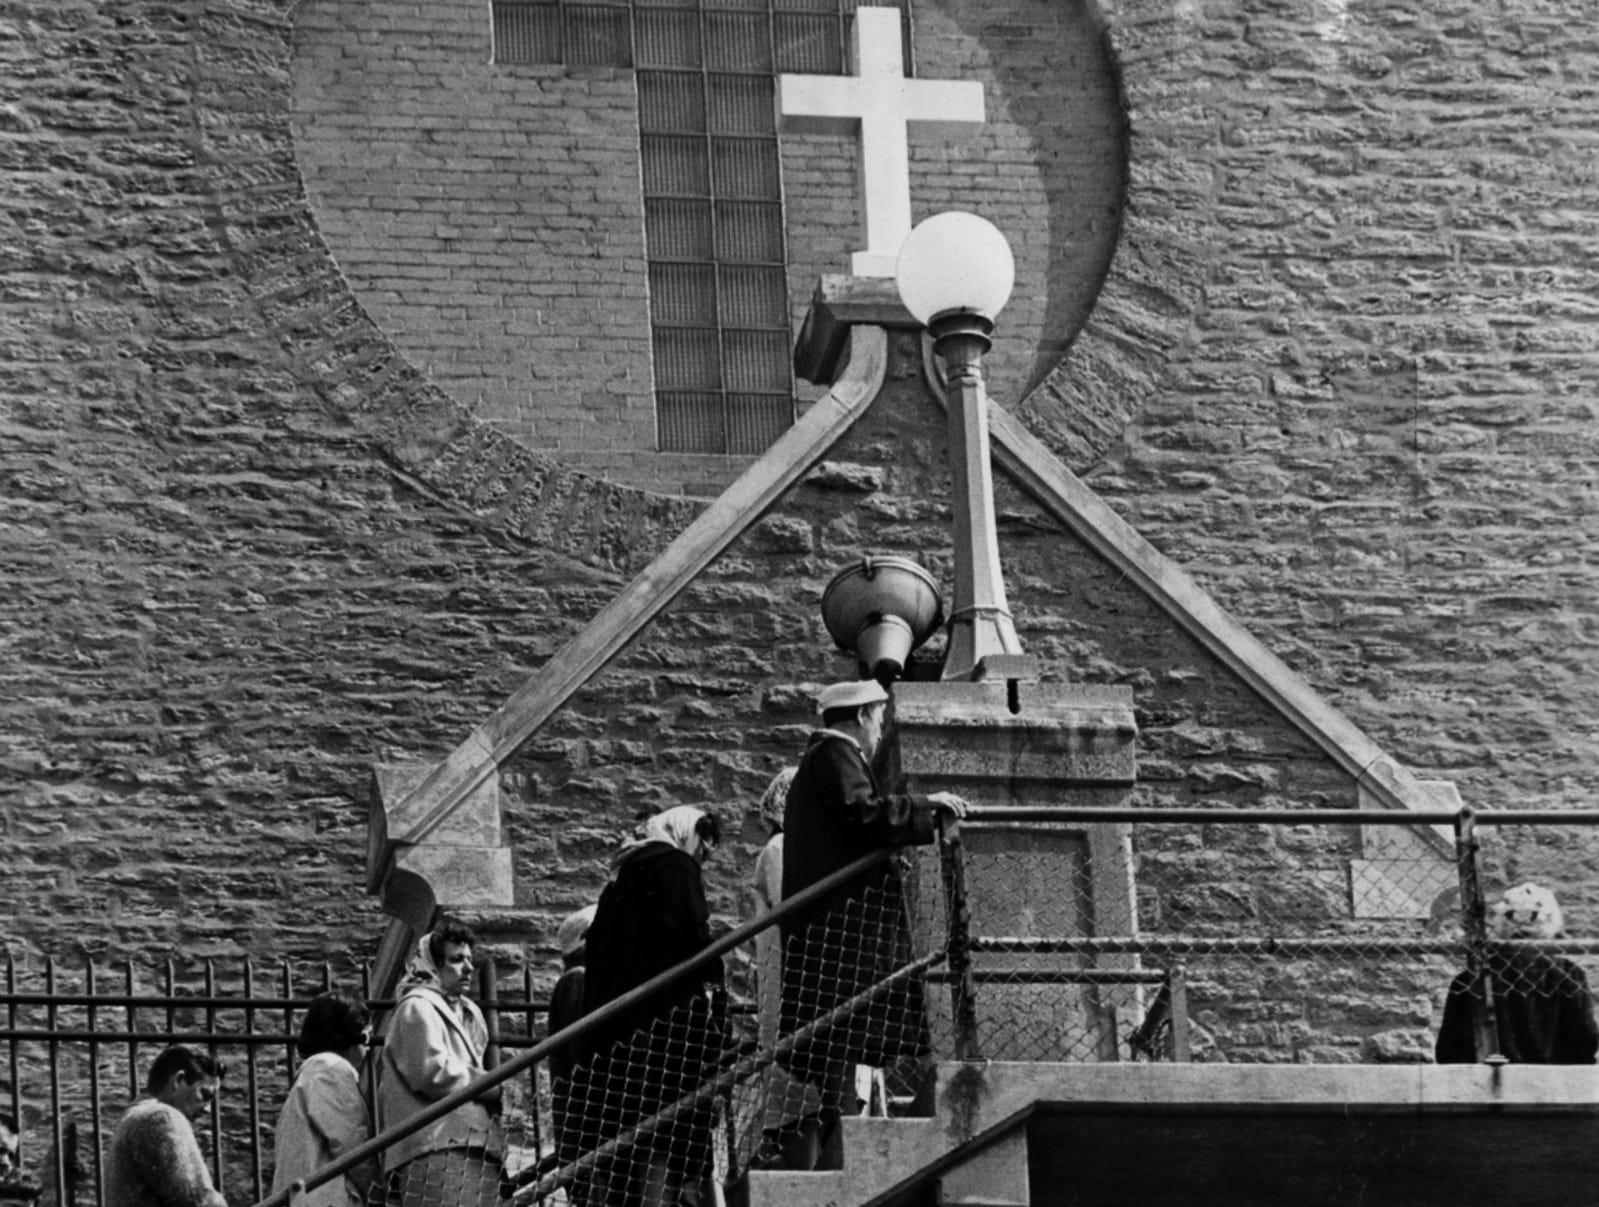 APRIL 16, 1965: On Stairway Of Sorrow: Greater Cincinnatians, starting at midnight, began climbing to the summit of their own Calvary, step by step, prayer by prayer, thousands of them climbed toward the Immaculata Church, an old stone church at Pavilion and Guido streets, atop Mount Adams.